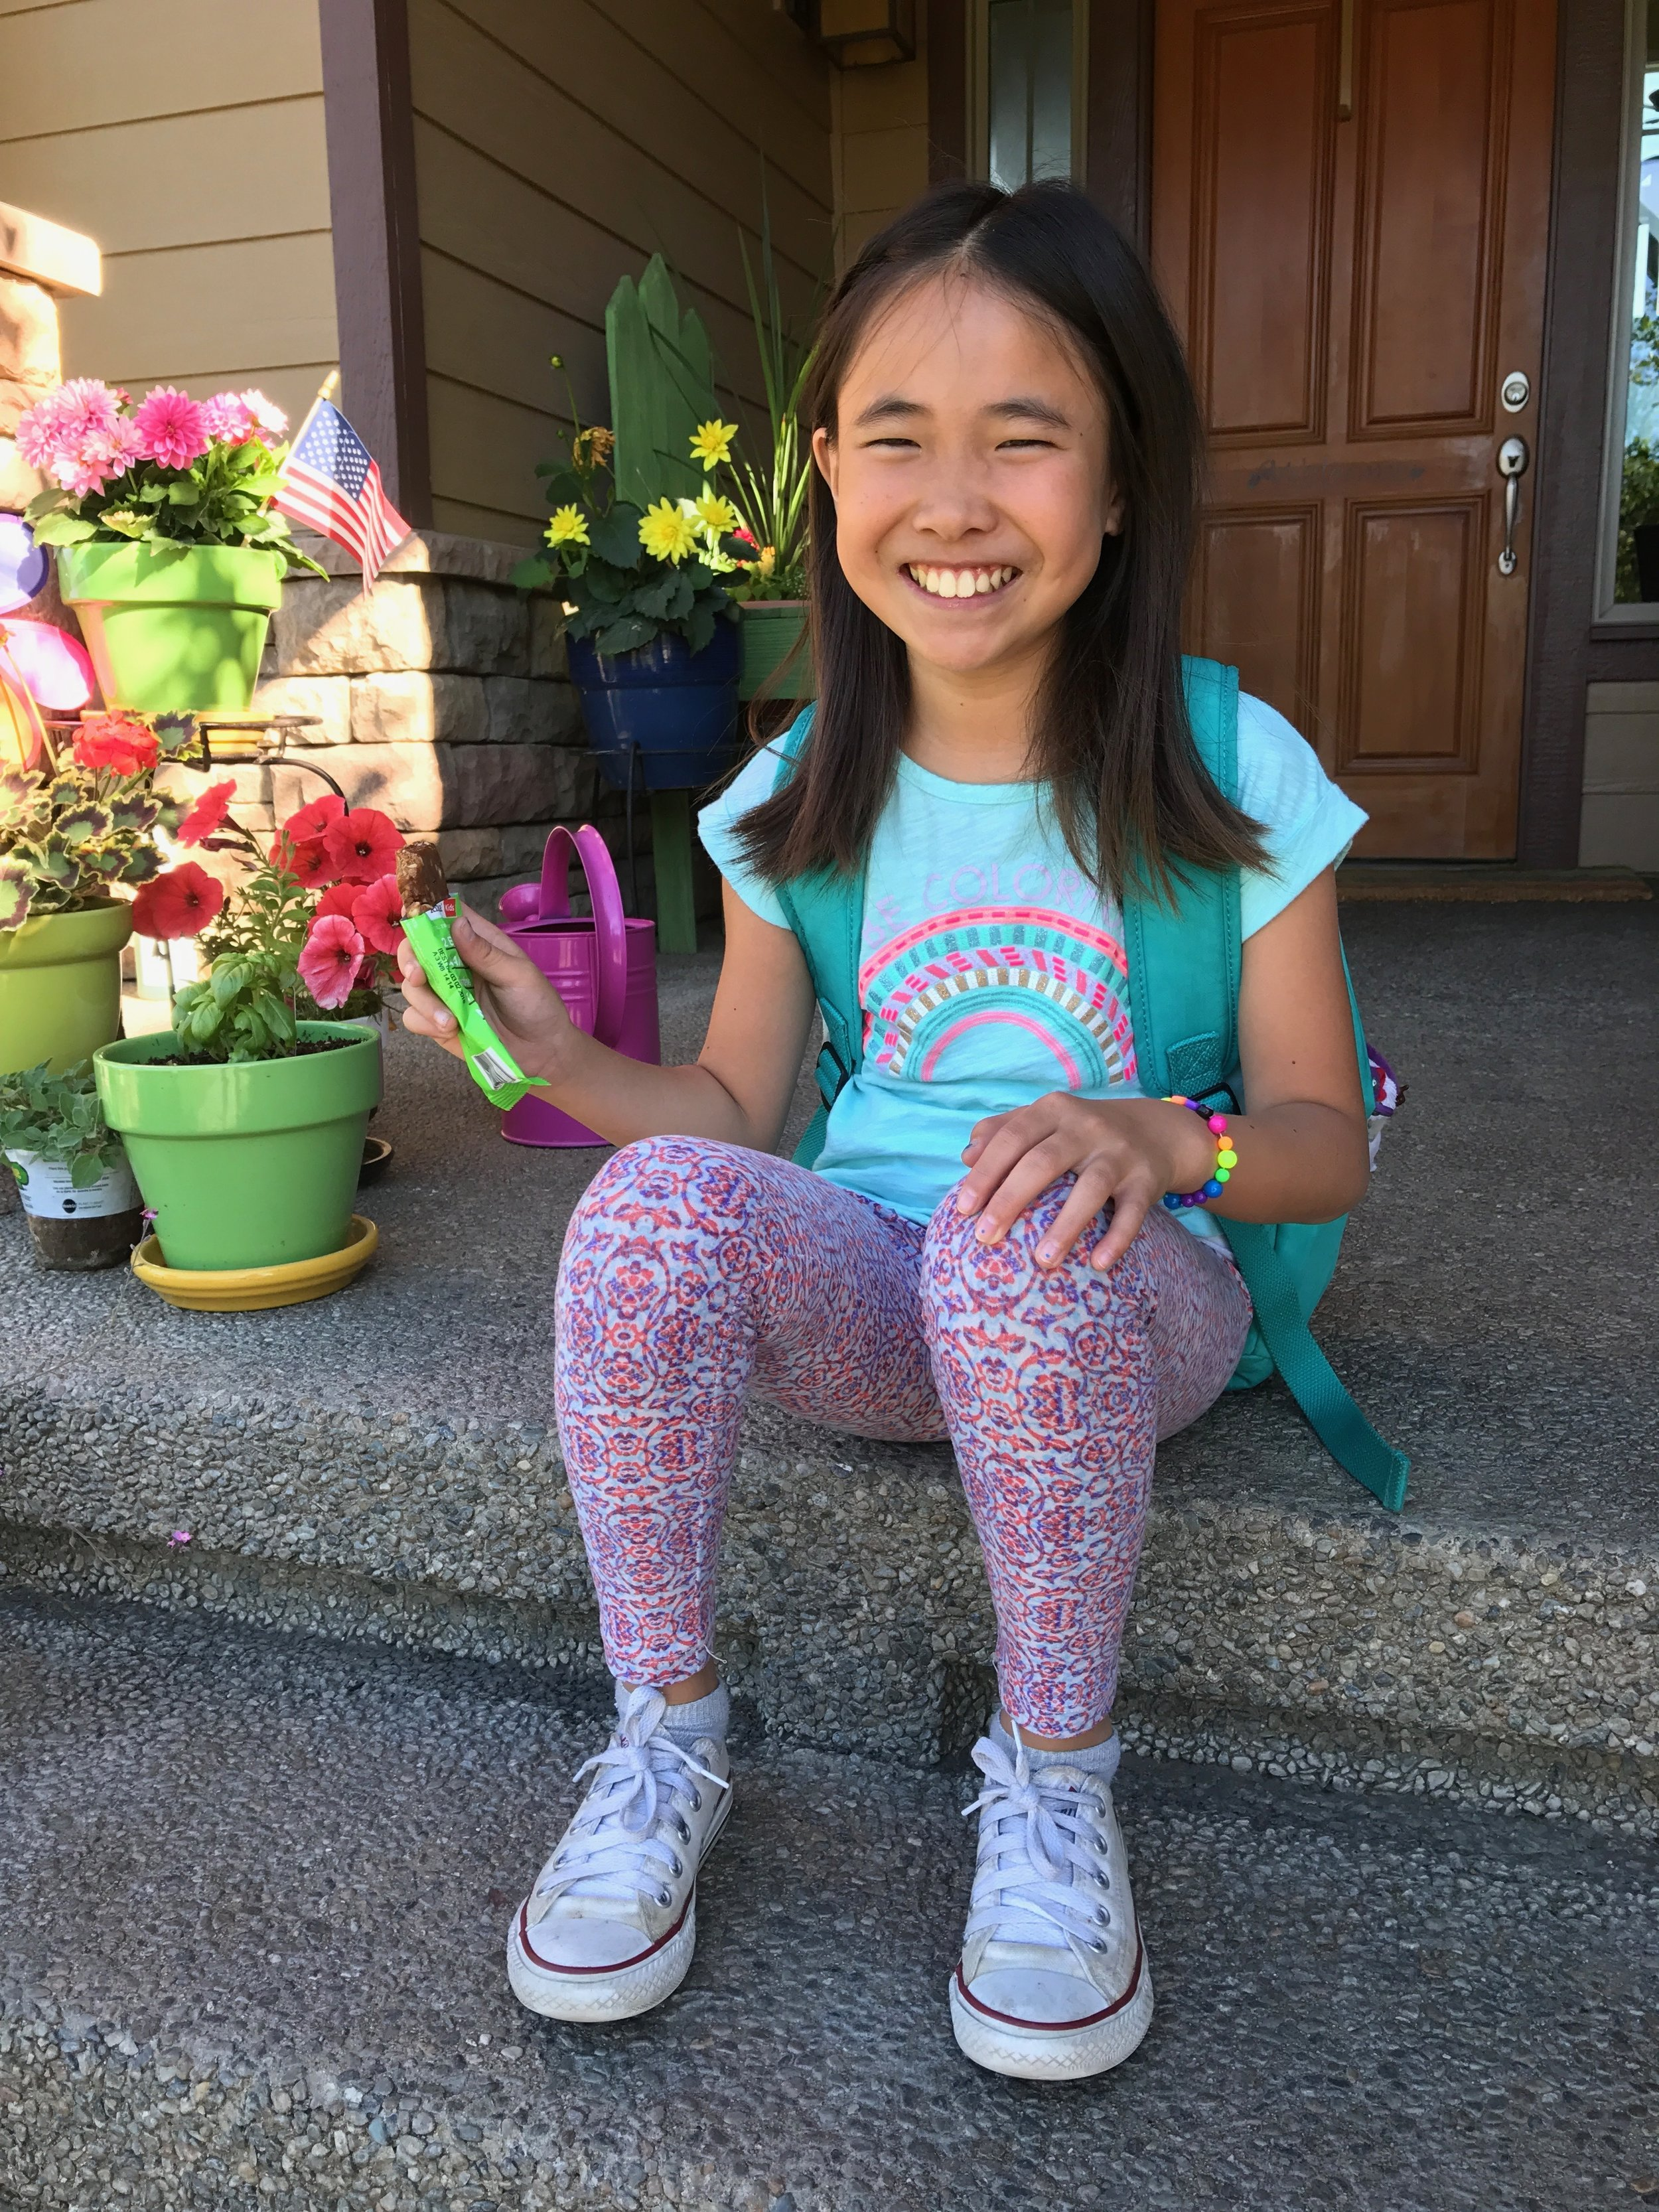 June 19th.Addie on the last day of third grade. Her smile says it all.